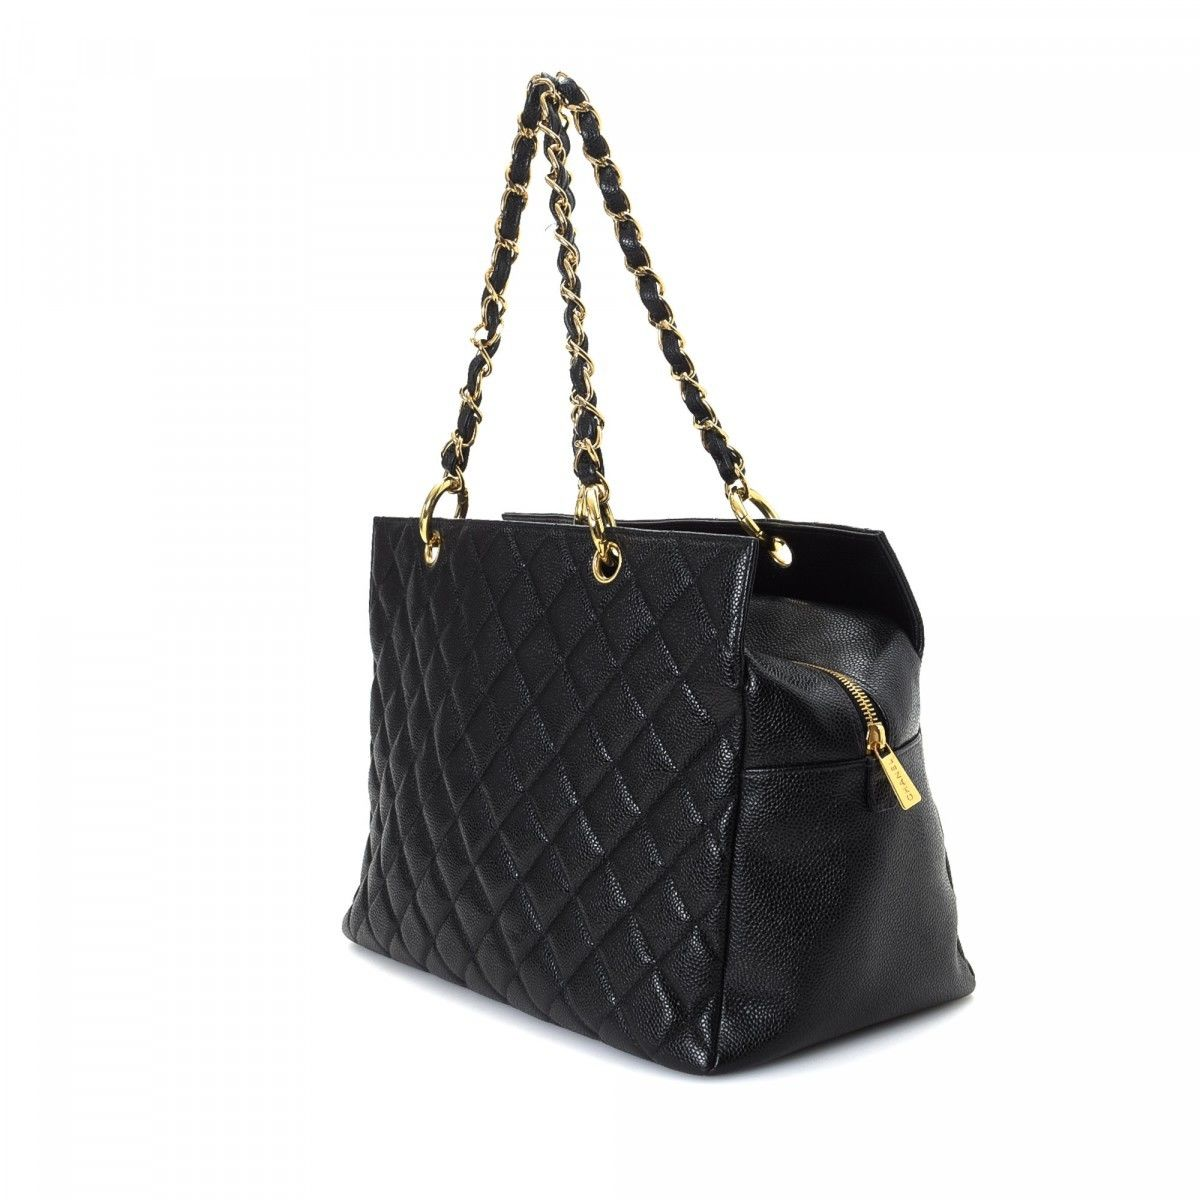 390d6685d9c1 Chanel Petite Timeless Tote Caviar Calf - LXRandCo - Pre-Owned ...